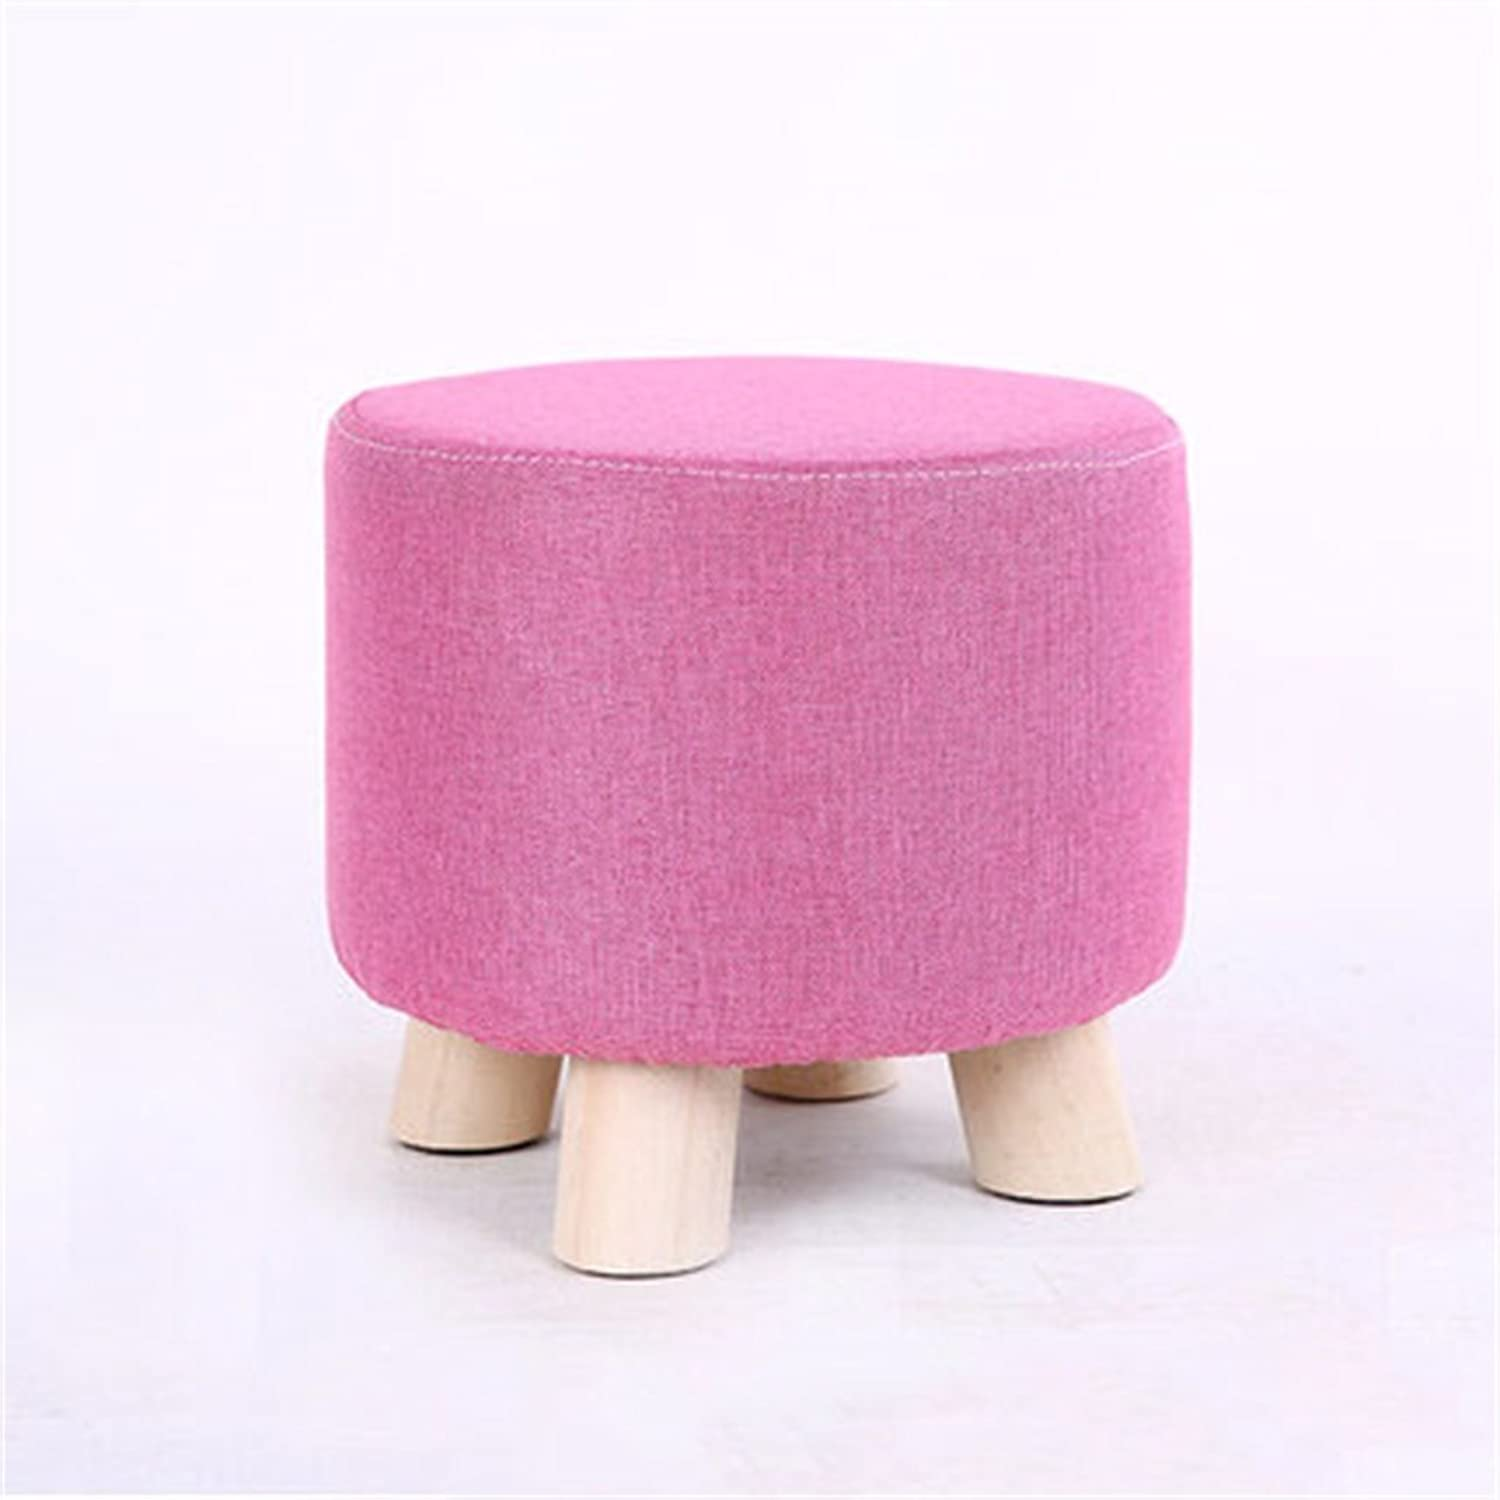 Upholstered Footstool Fabric Fashion Modern Coffee Table Stool Home Creative Living Room Solid Wood Washable Design Cotton Linen Material Pine Legs Solid Wood Frame Round Size  28cm × 25cm